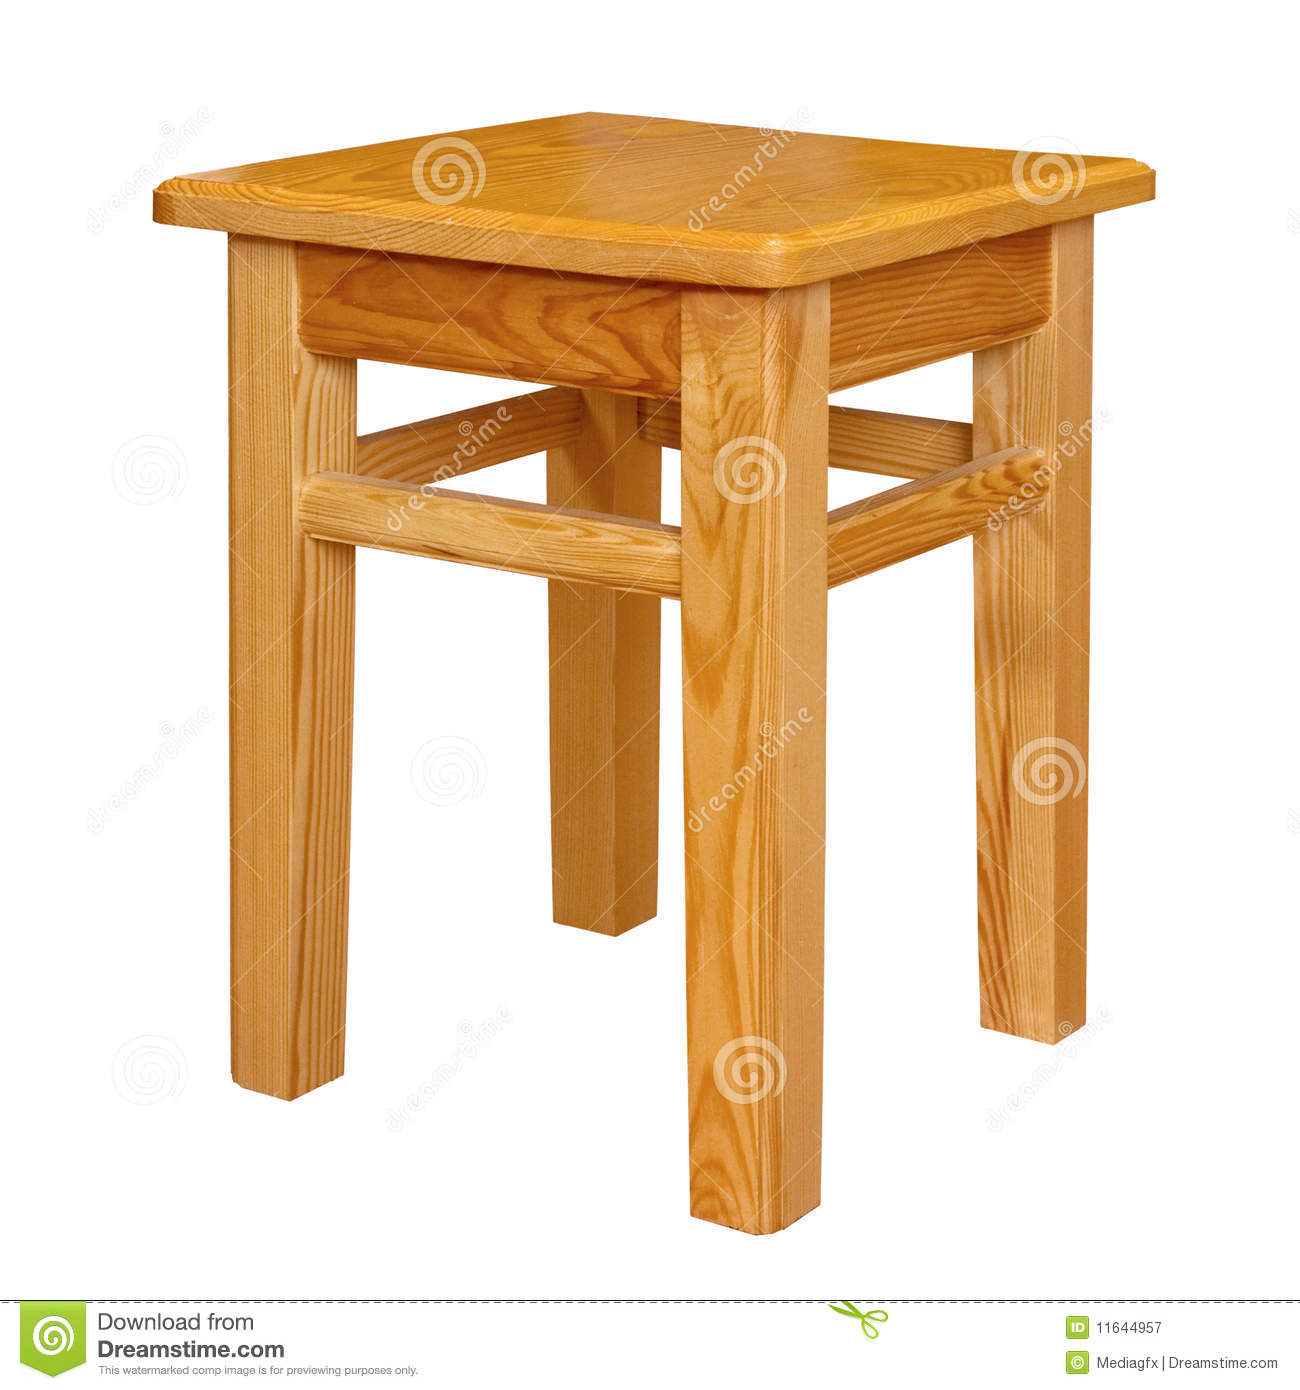 Wonderful image of Simple Wood Stool Isolated Royalty Free Stock Photography Image  with #AD5210 color and 1300x1390 pixels